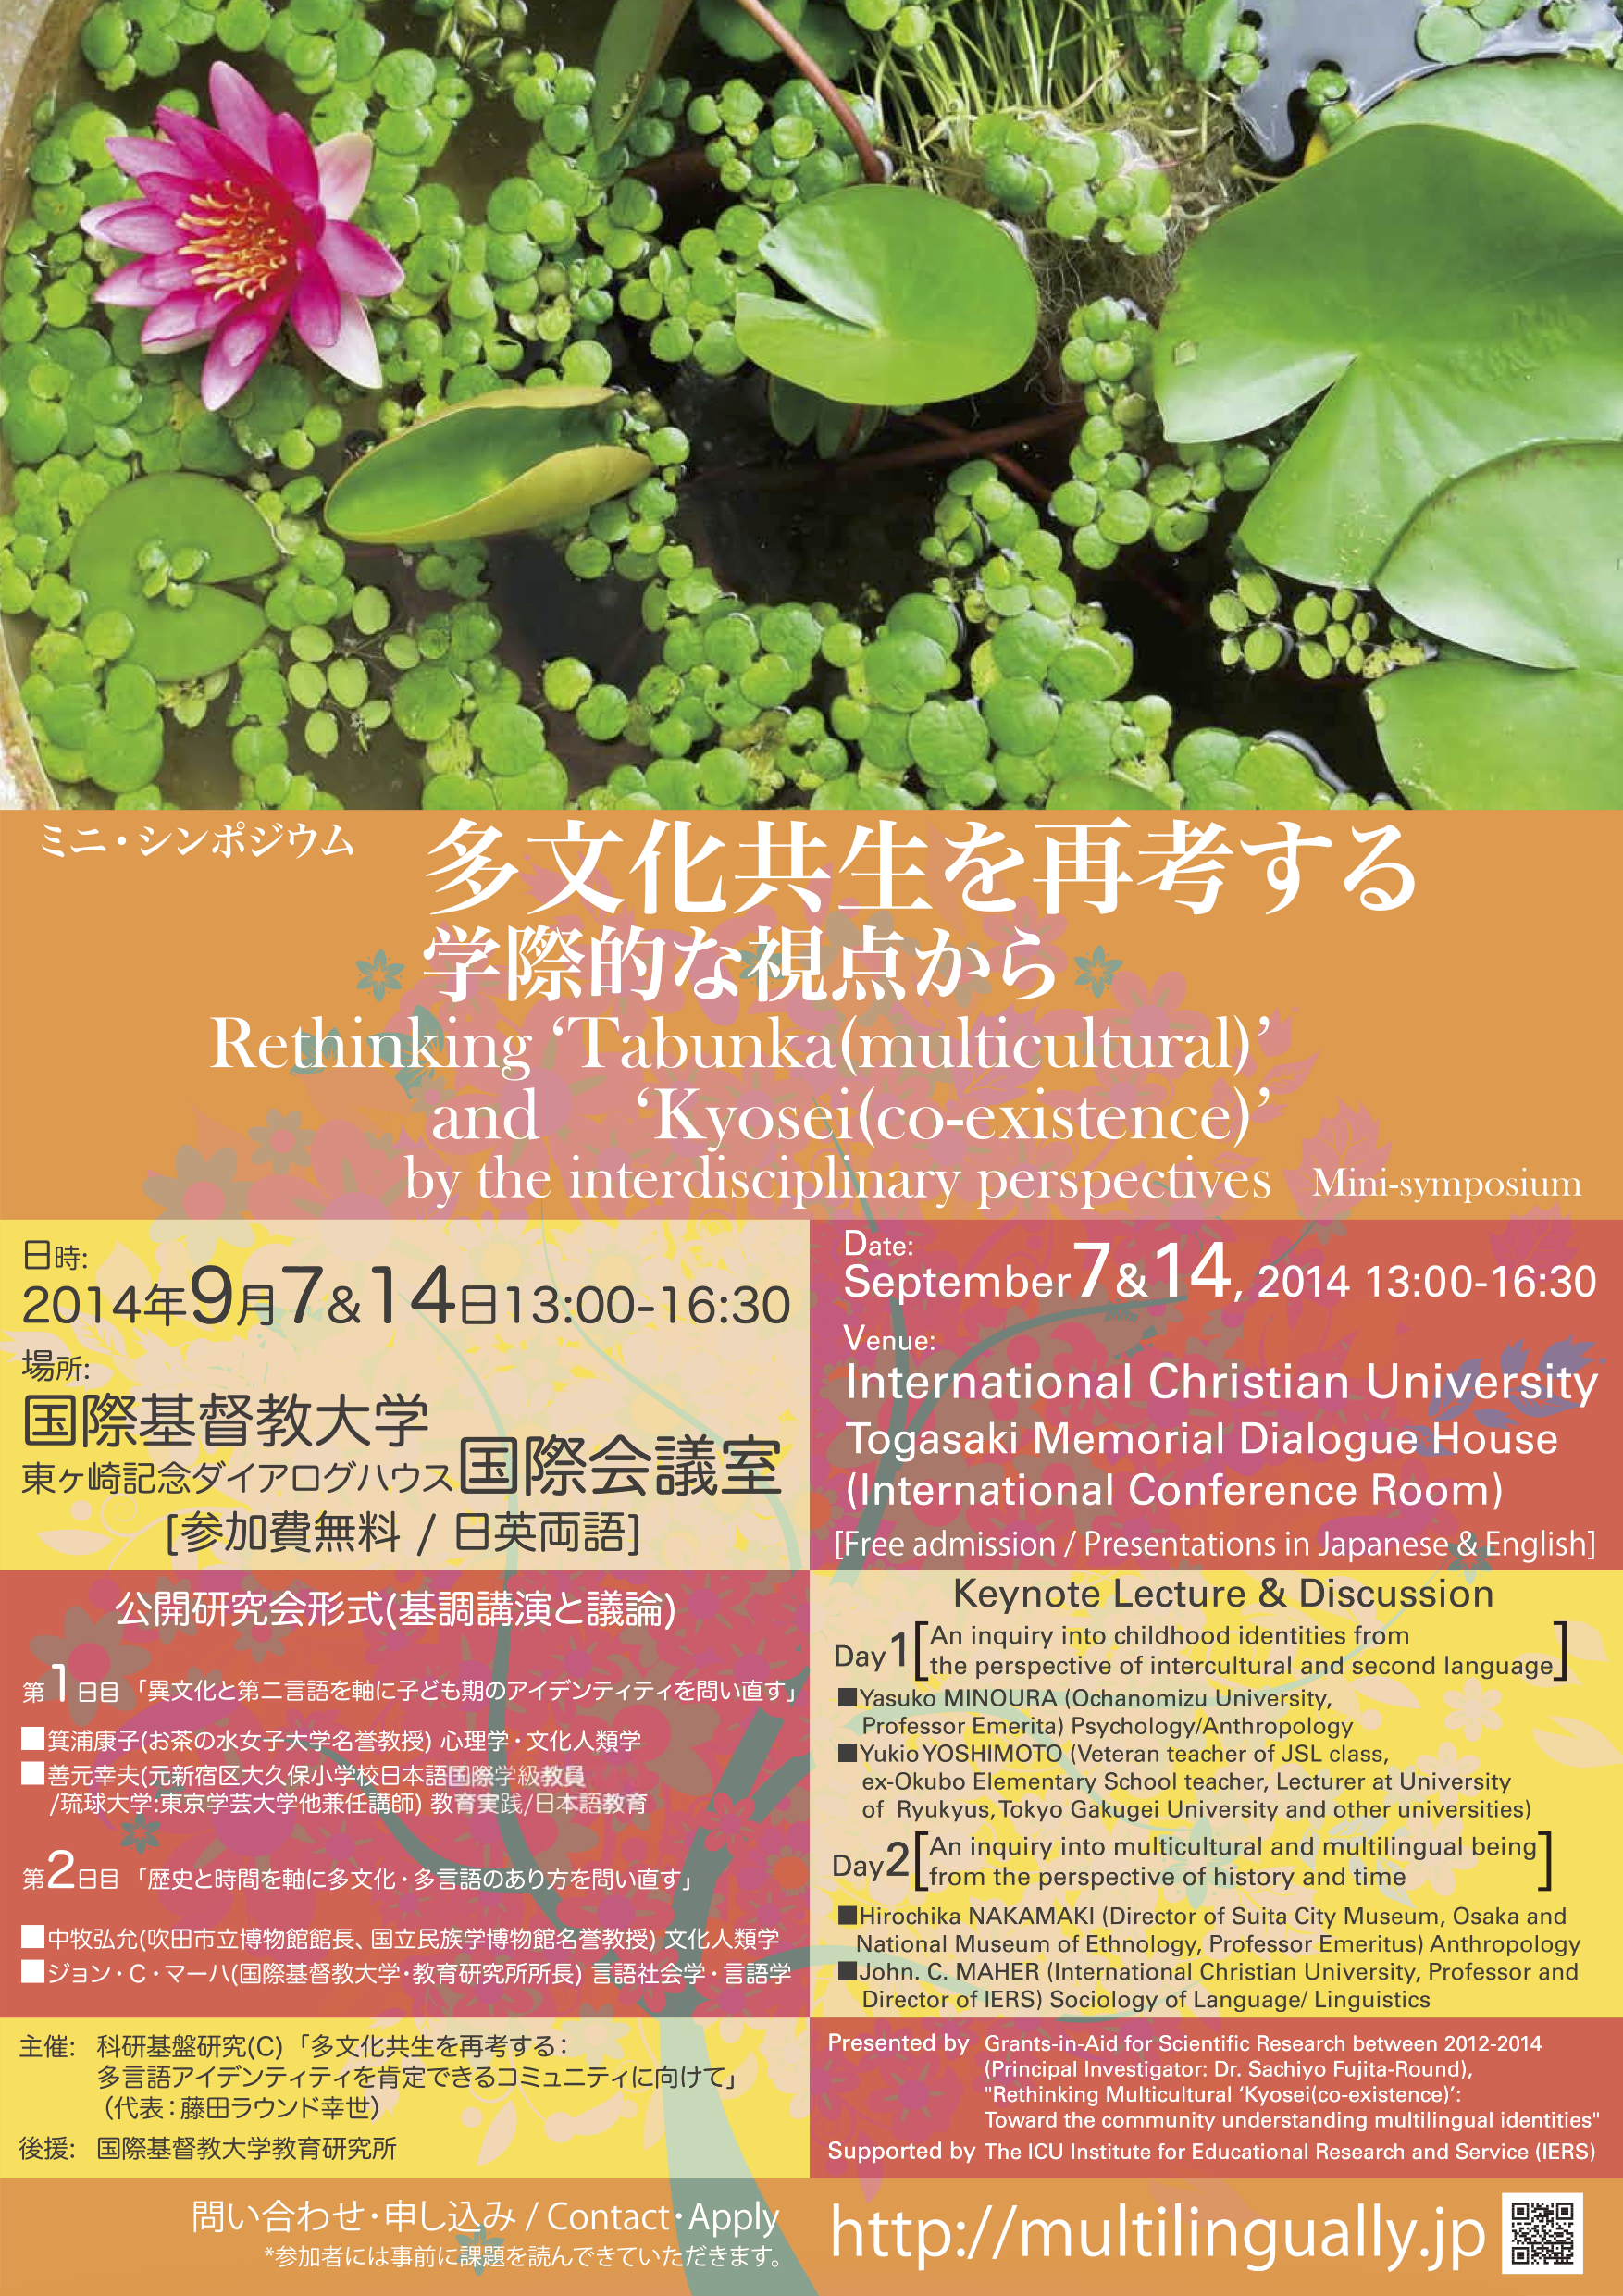 2014Aug21revised symposium poster_small